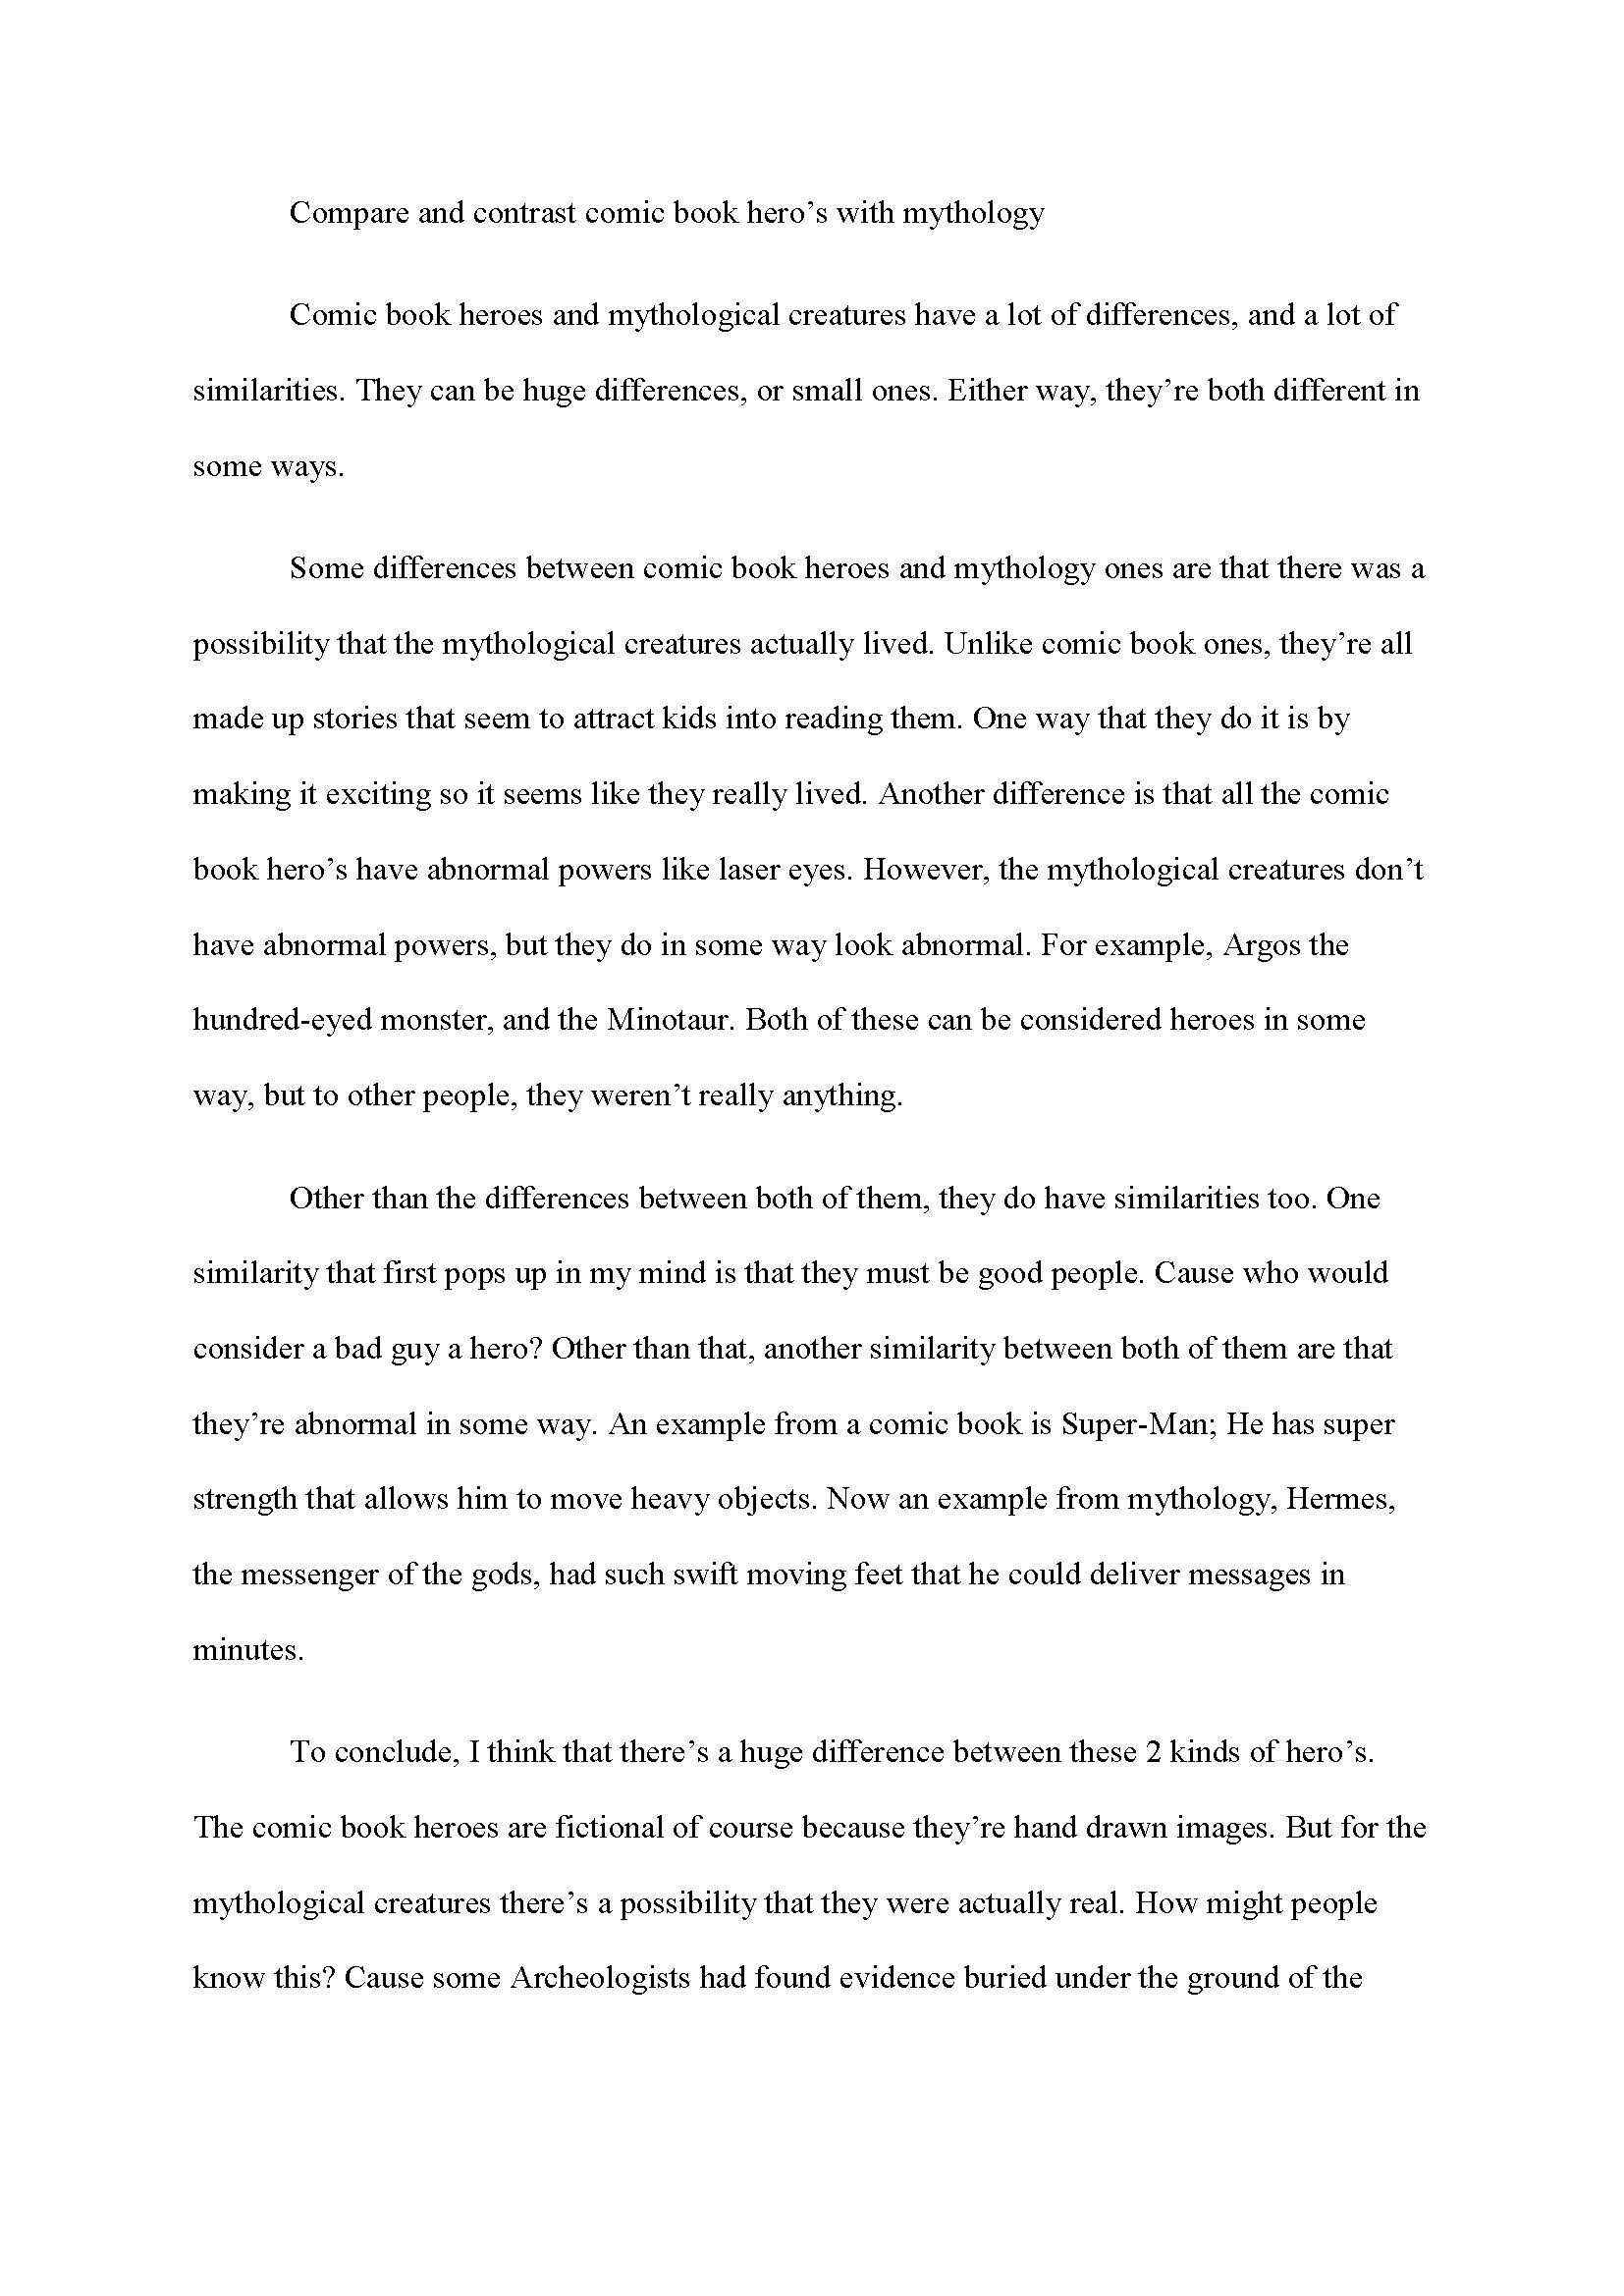 Essay examples, Essay, Thesis statement examples